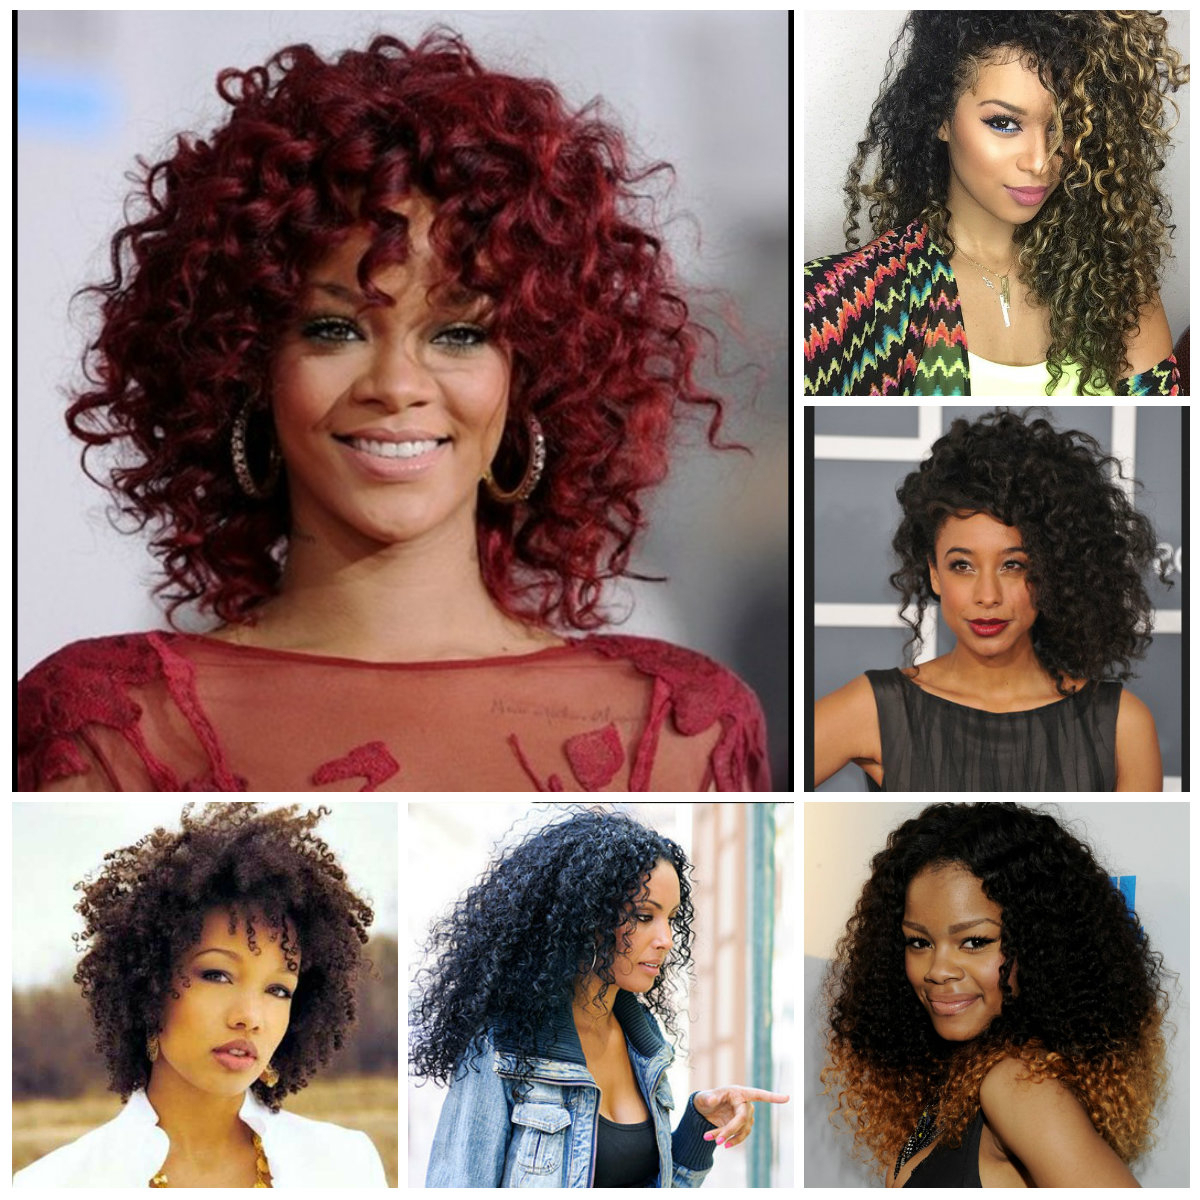 Big Natural Curly Hairstyles For Black Women 2019 | Hairstyles For Within Big Curls Short Hairstyles (View 7 of 25)